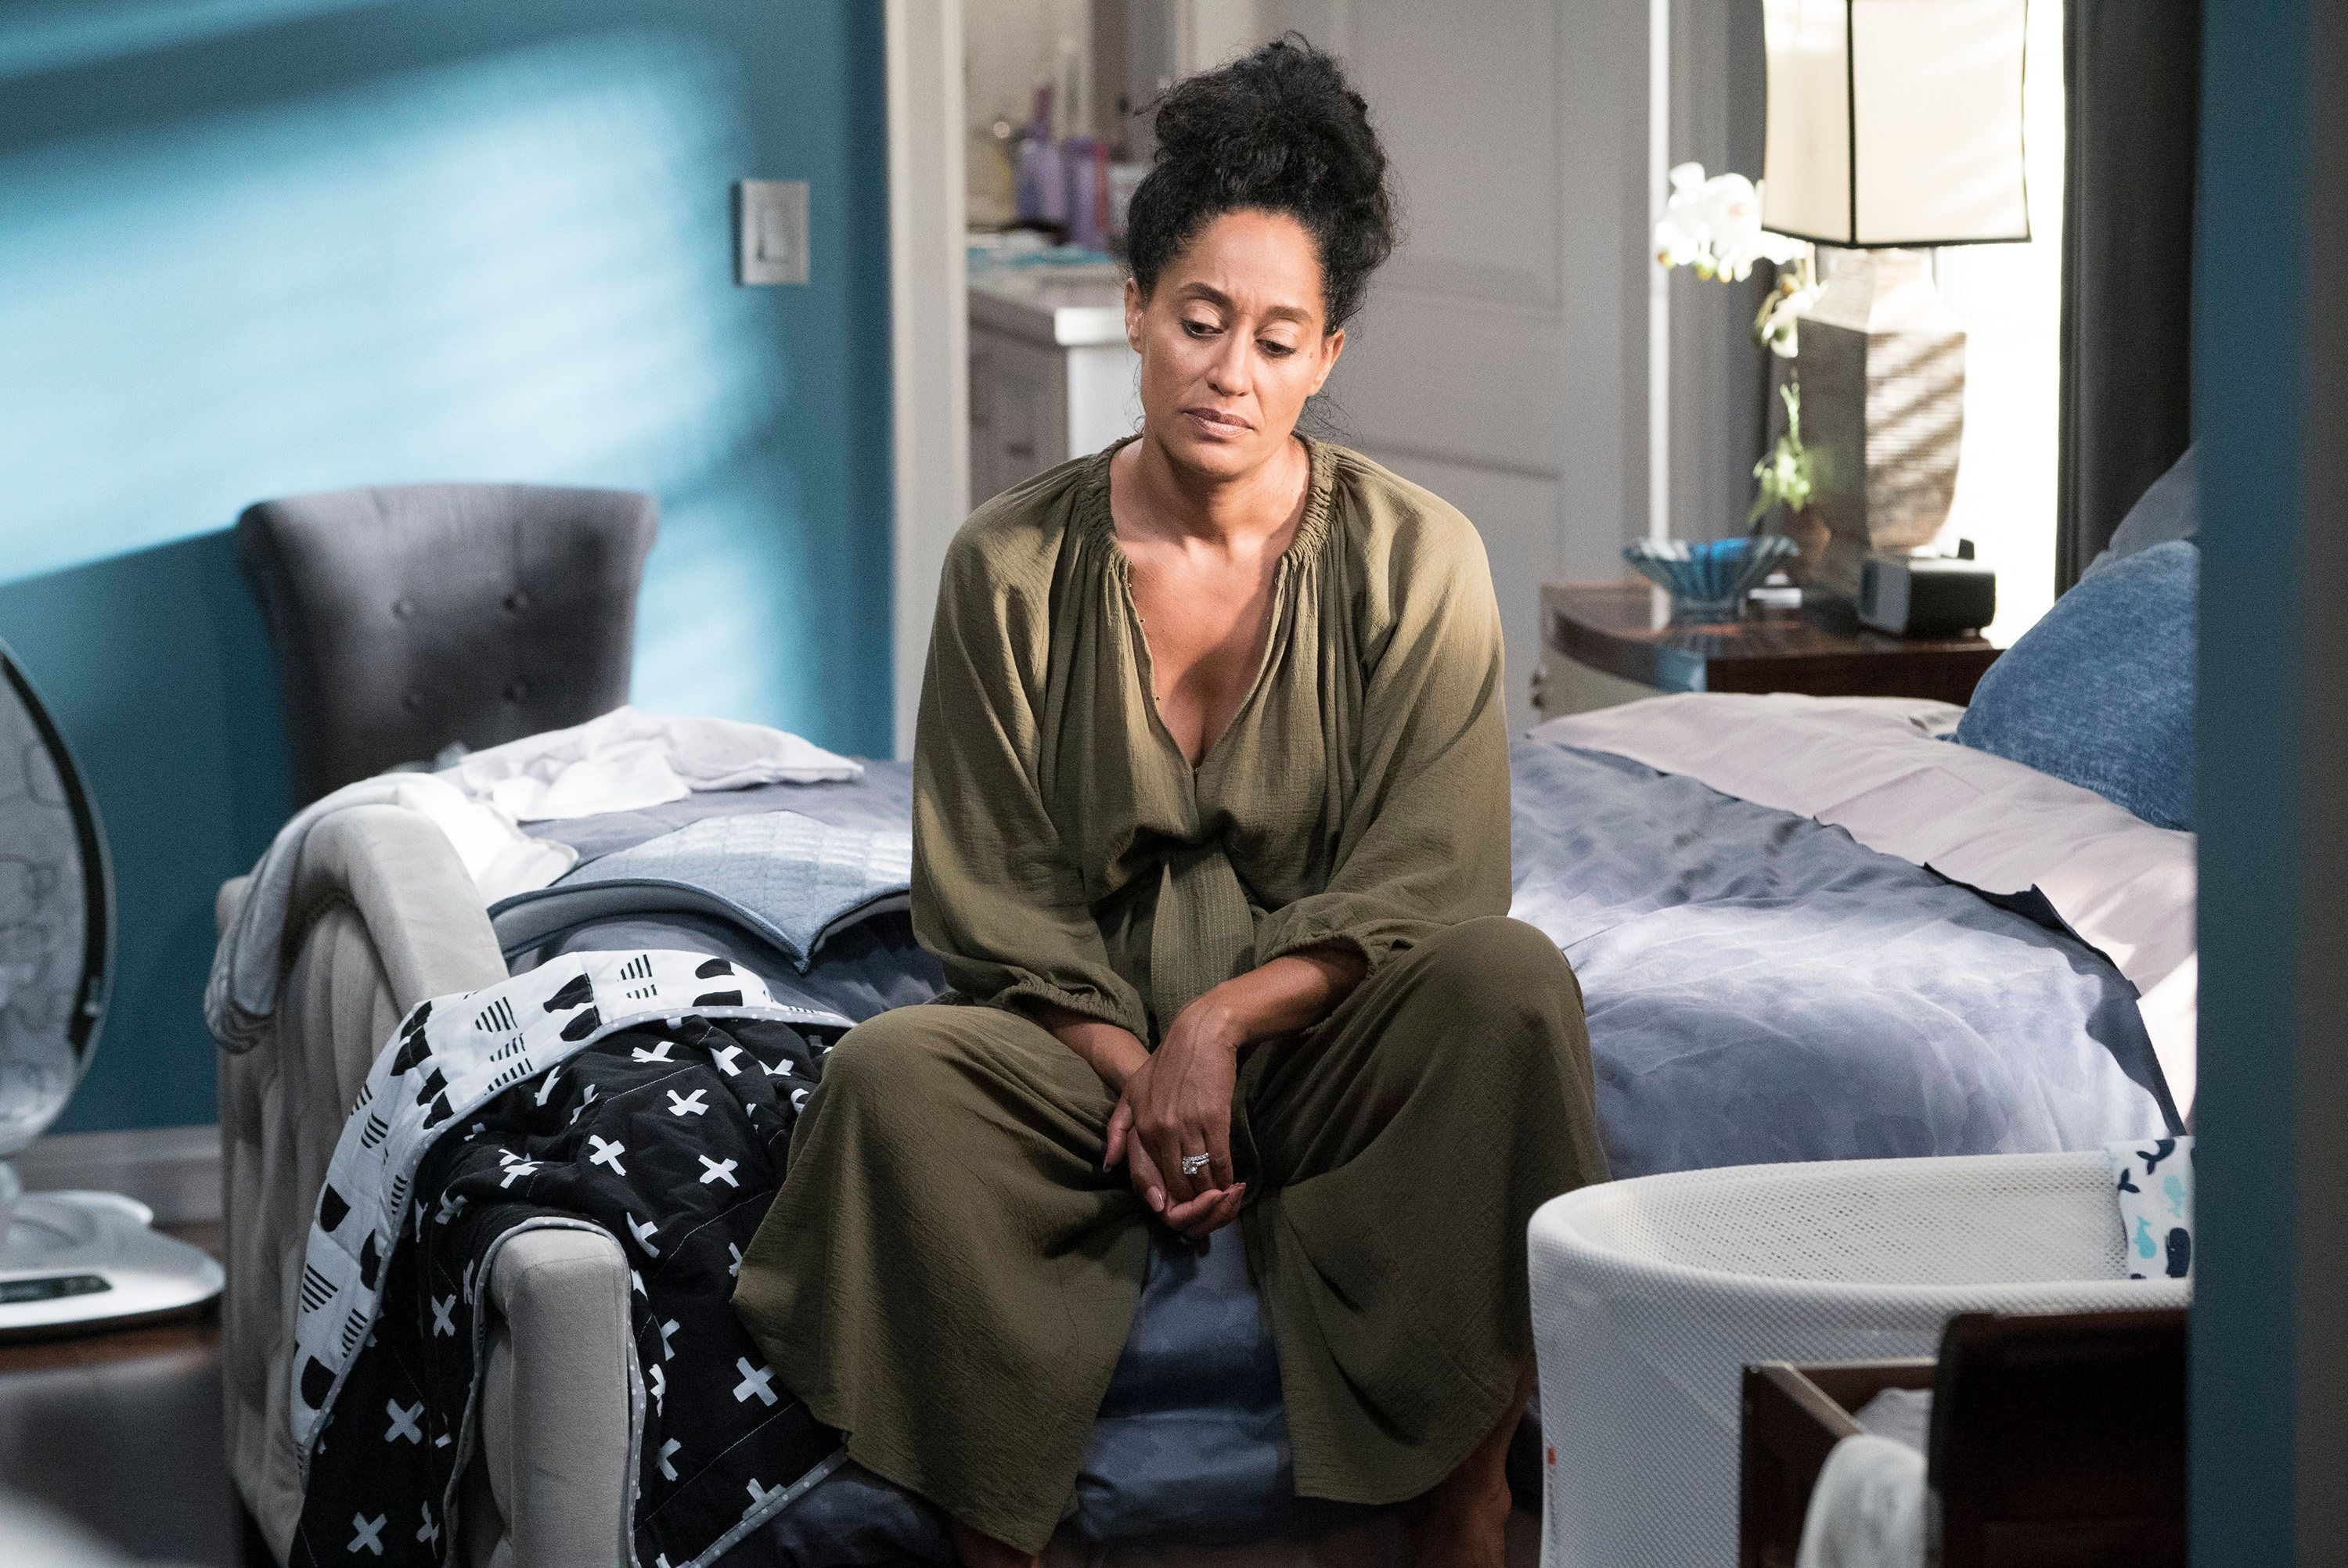 In the episode, Rainbow Johnson (played by Tracee Ellis Ross) is in denial about having postpartum depression and feels weak and embarrassed for not being able to connect with her son.